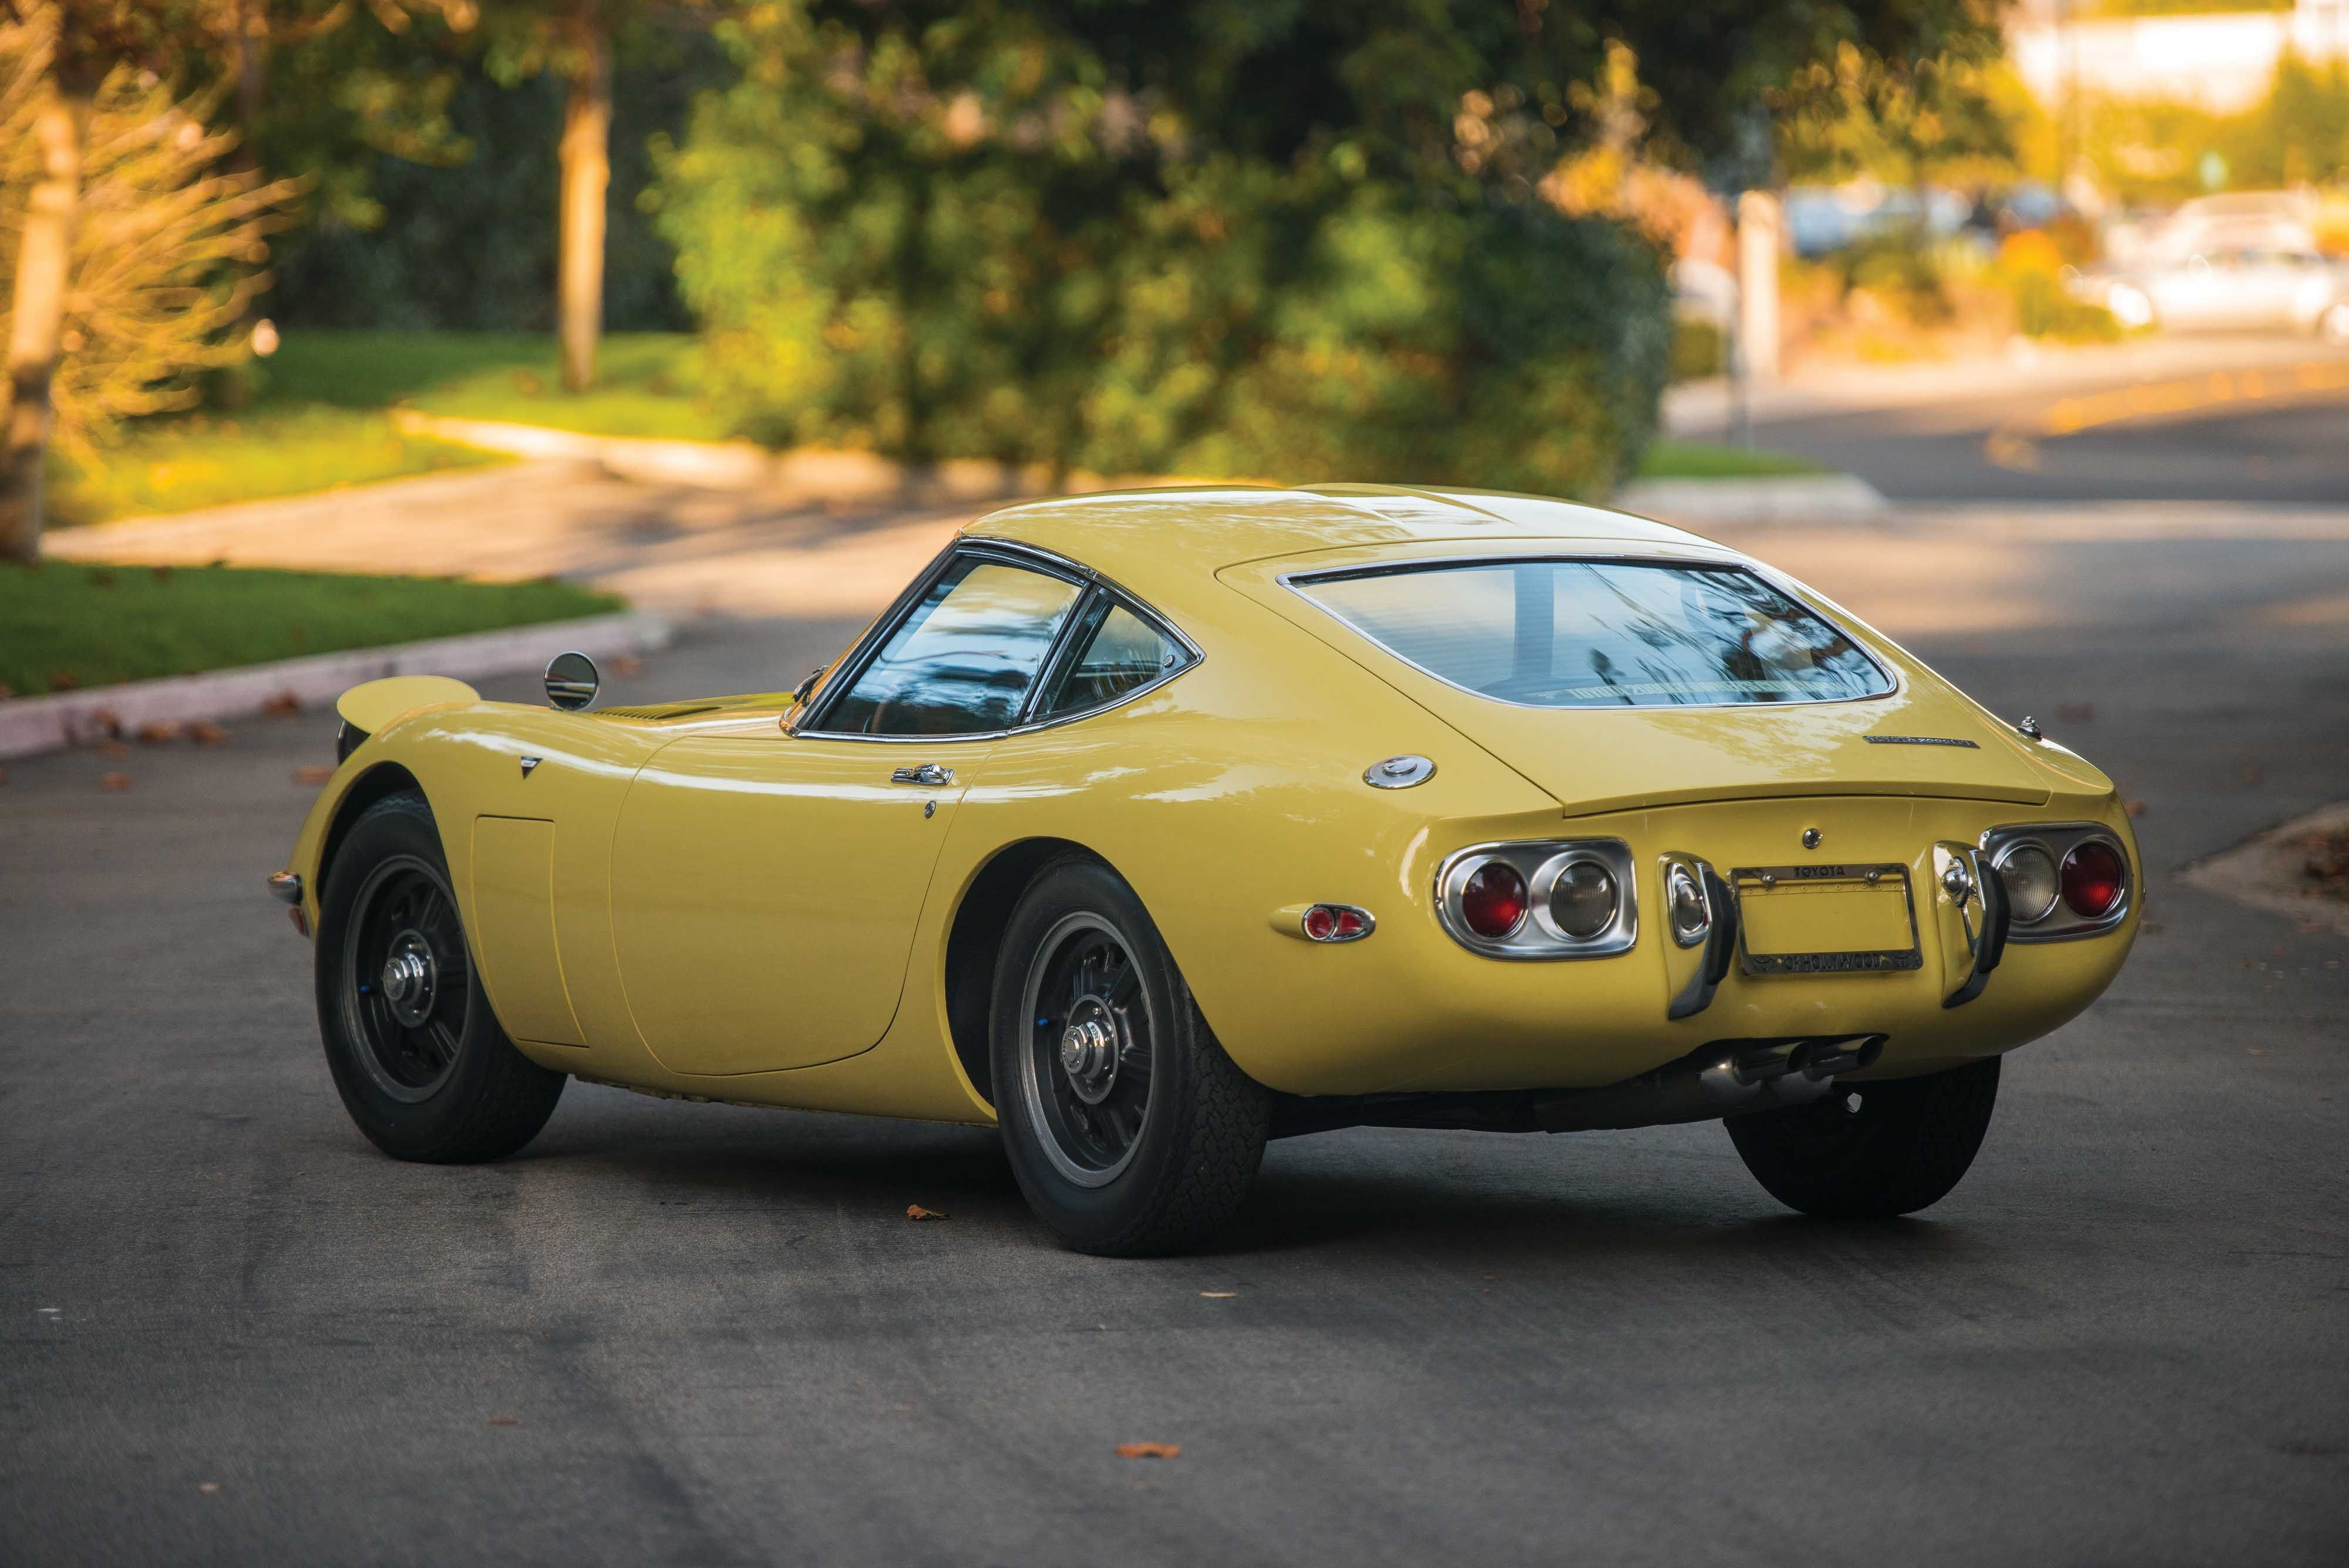 The First Japanese Supercar Classic Cars Toyota 2000gt Classic